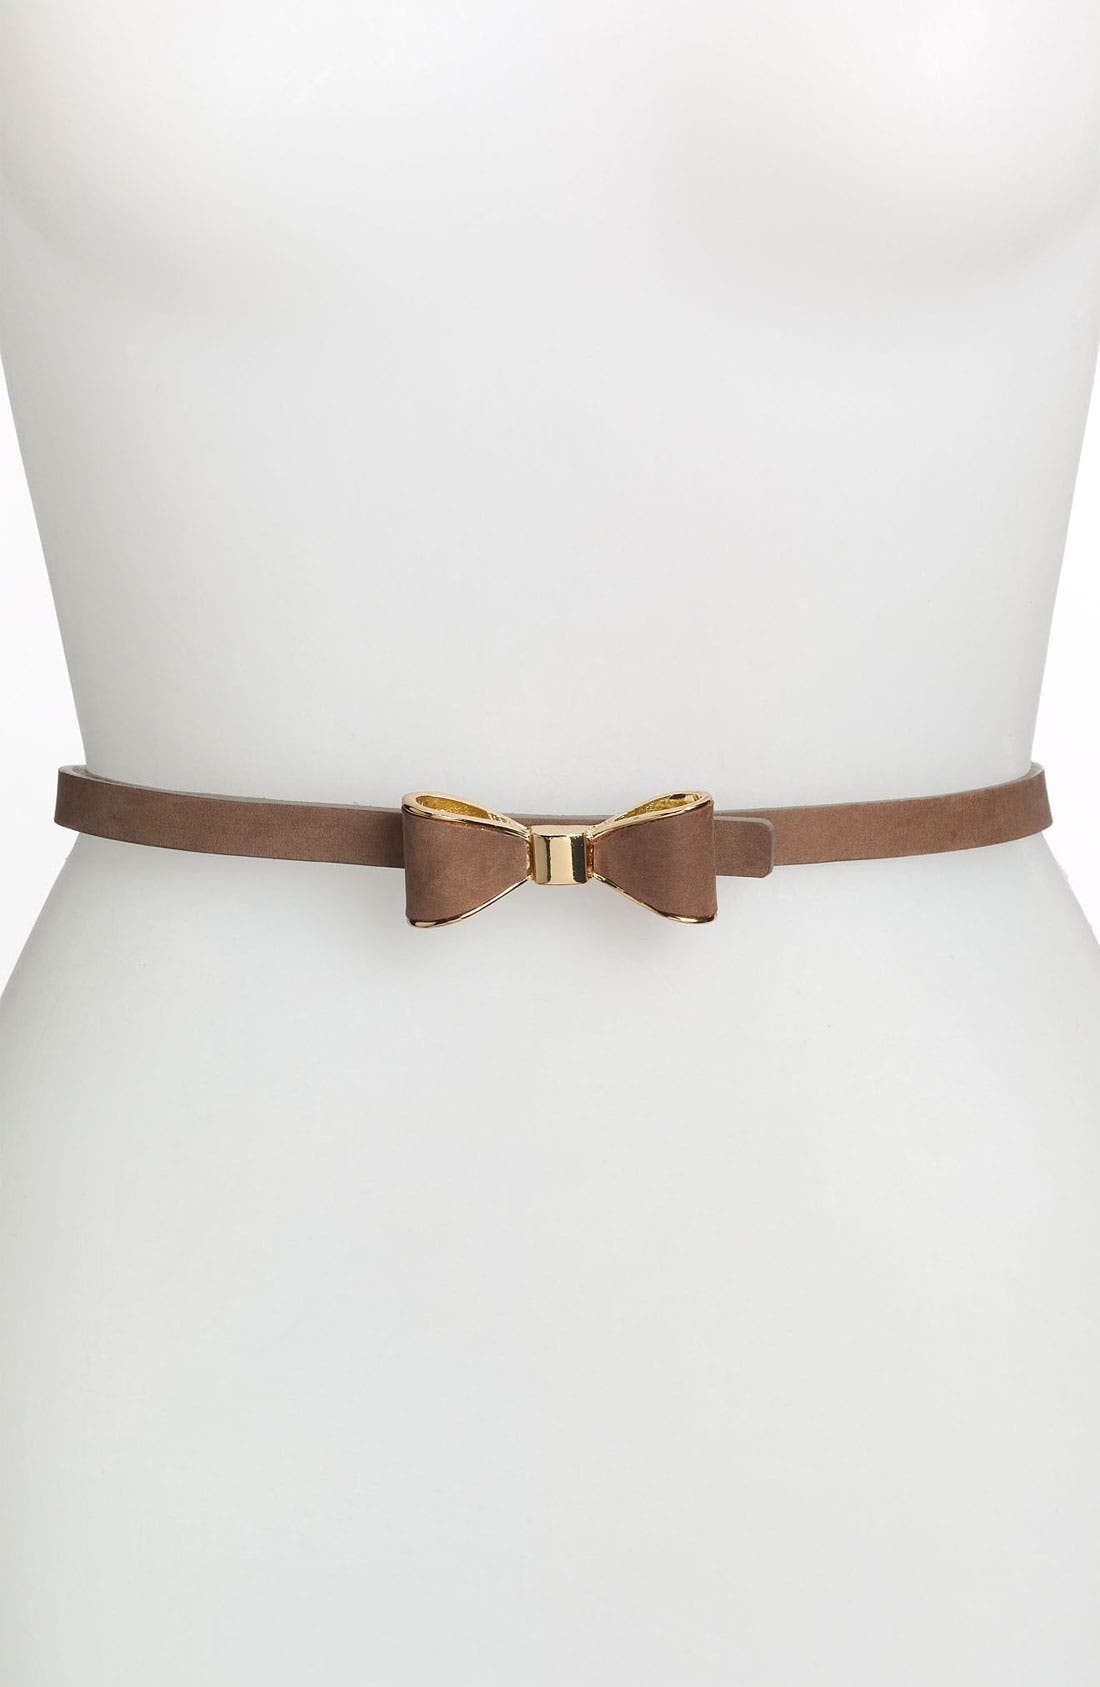 Alternate Image 1 Selected - Tarnish Skinny Suede Bow Belt